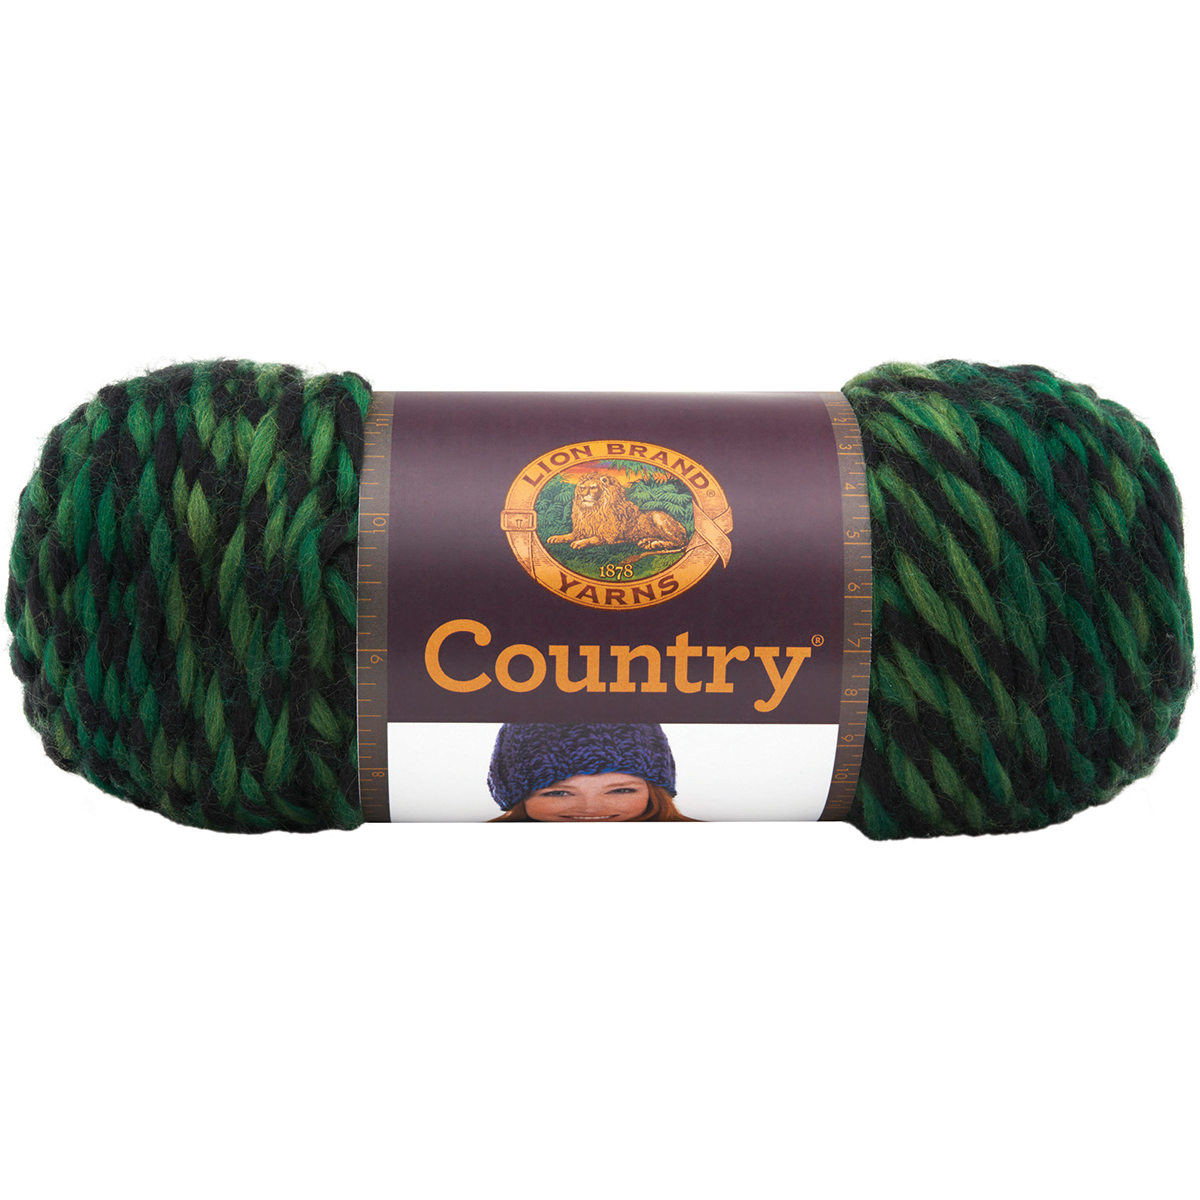 Lion Brand Country Yarn, Adirondack Green Multi-Colored